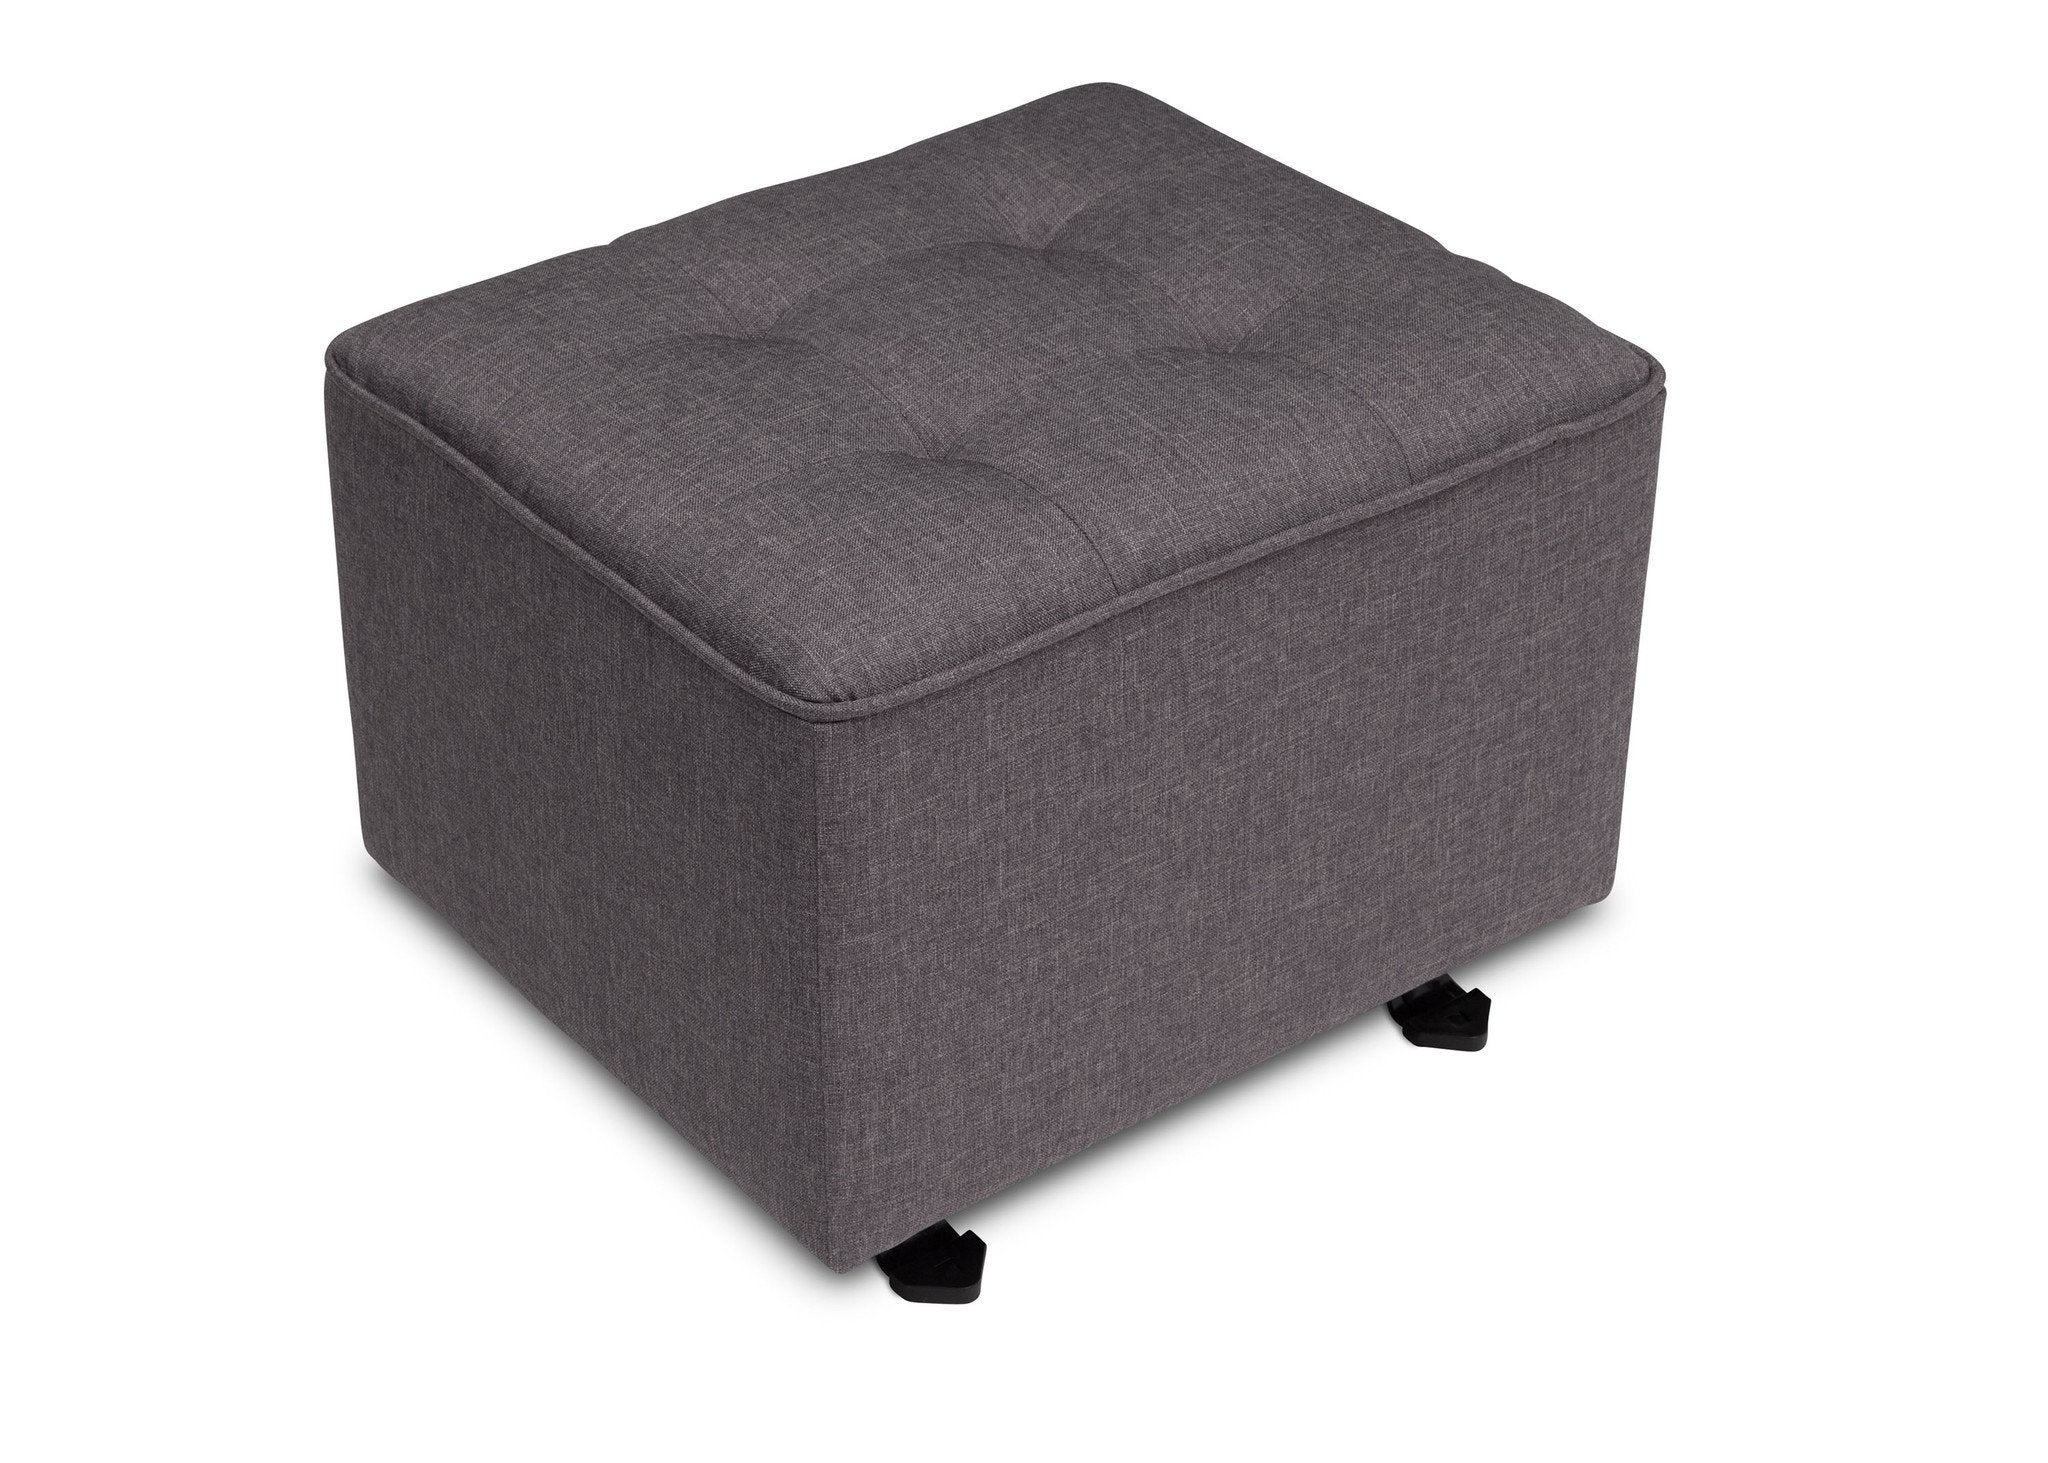 Delta Children Sweet Grey (3101) Milan Tufted Nursery Gliding Ottoman, Angled View b3b